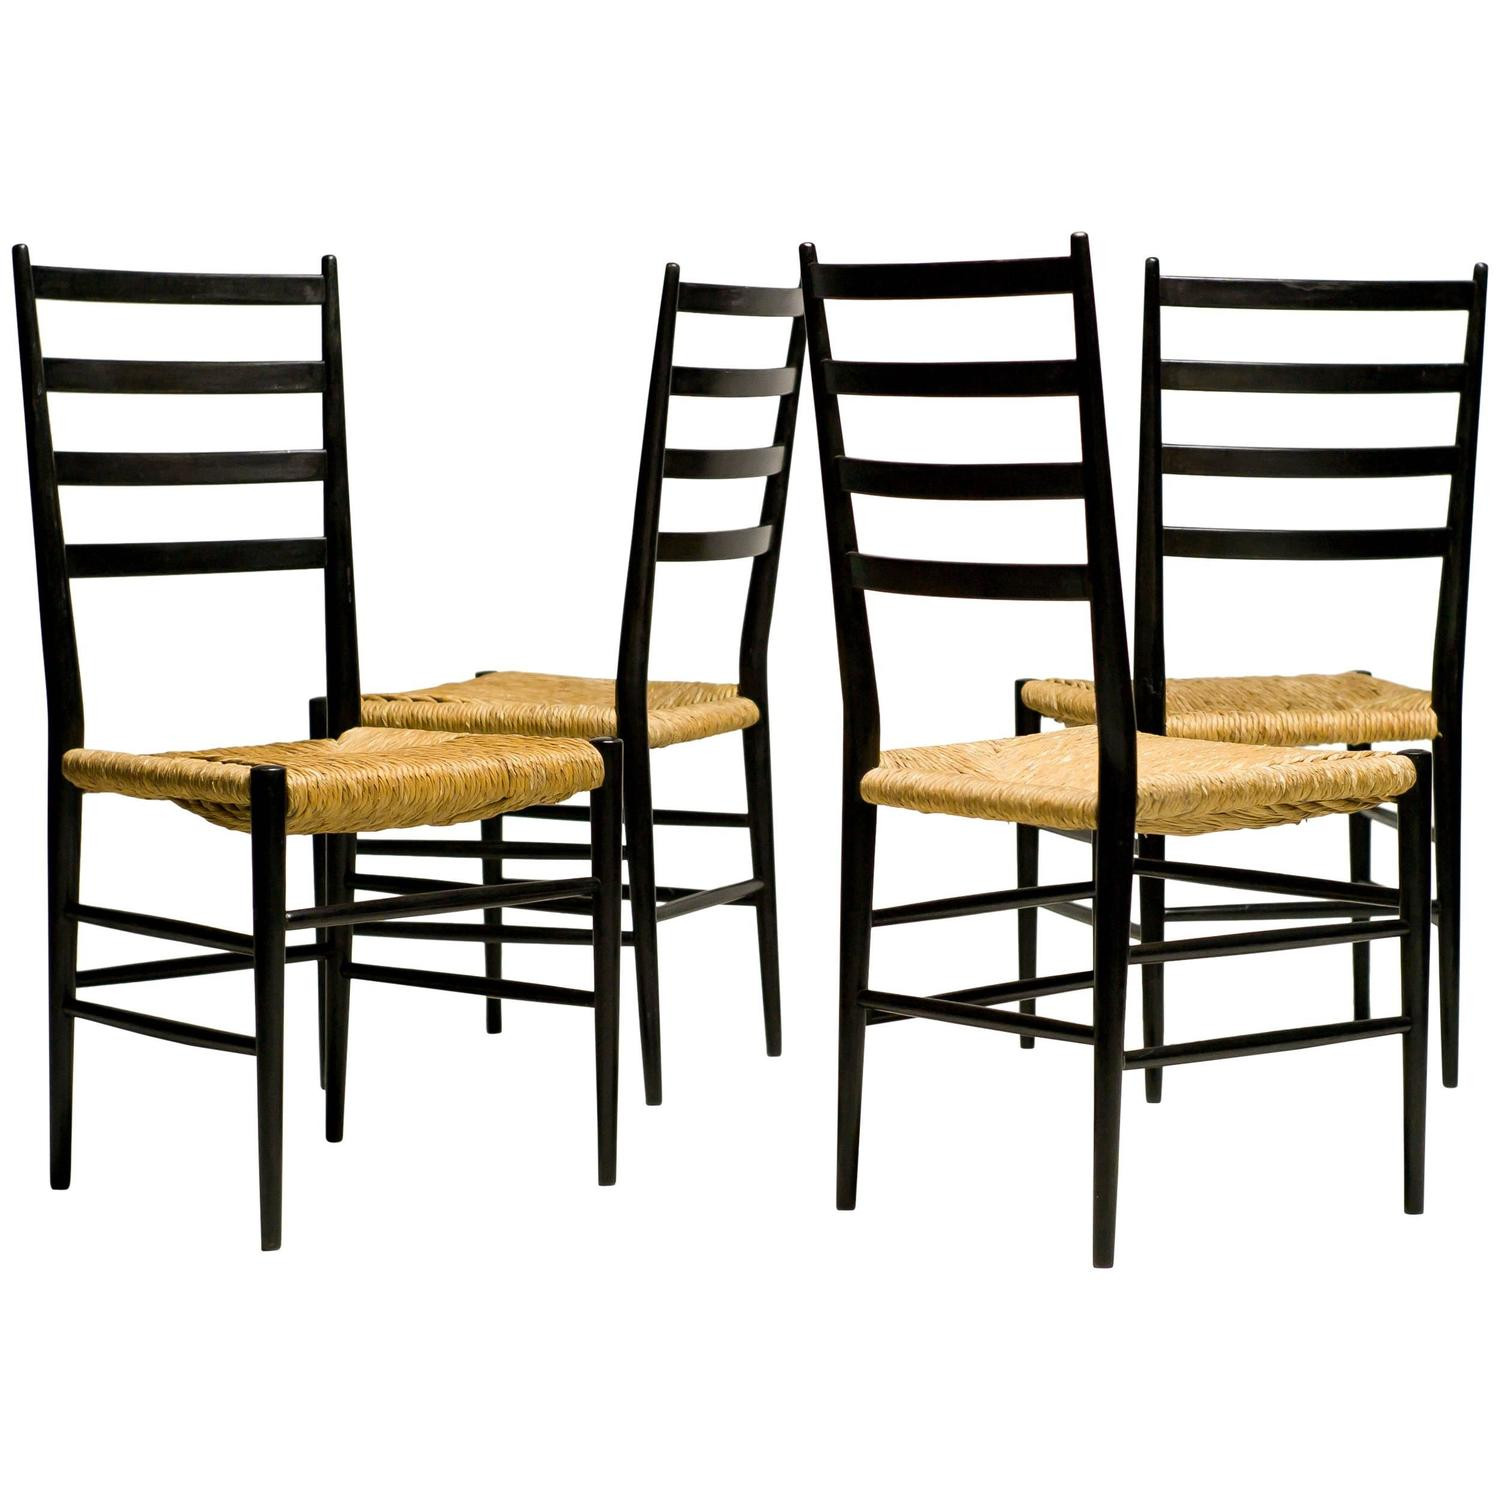 Furnitureinfashion Is Offering Very Affordable Arctic: Elegant Italian 1950 Black Ash And Rush Chairs For Sale At